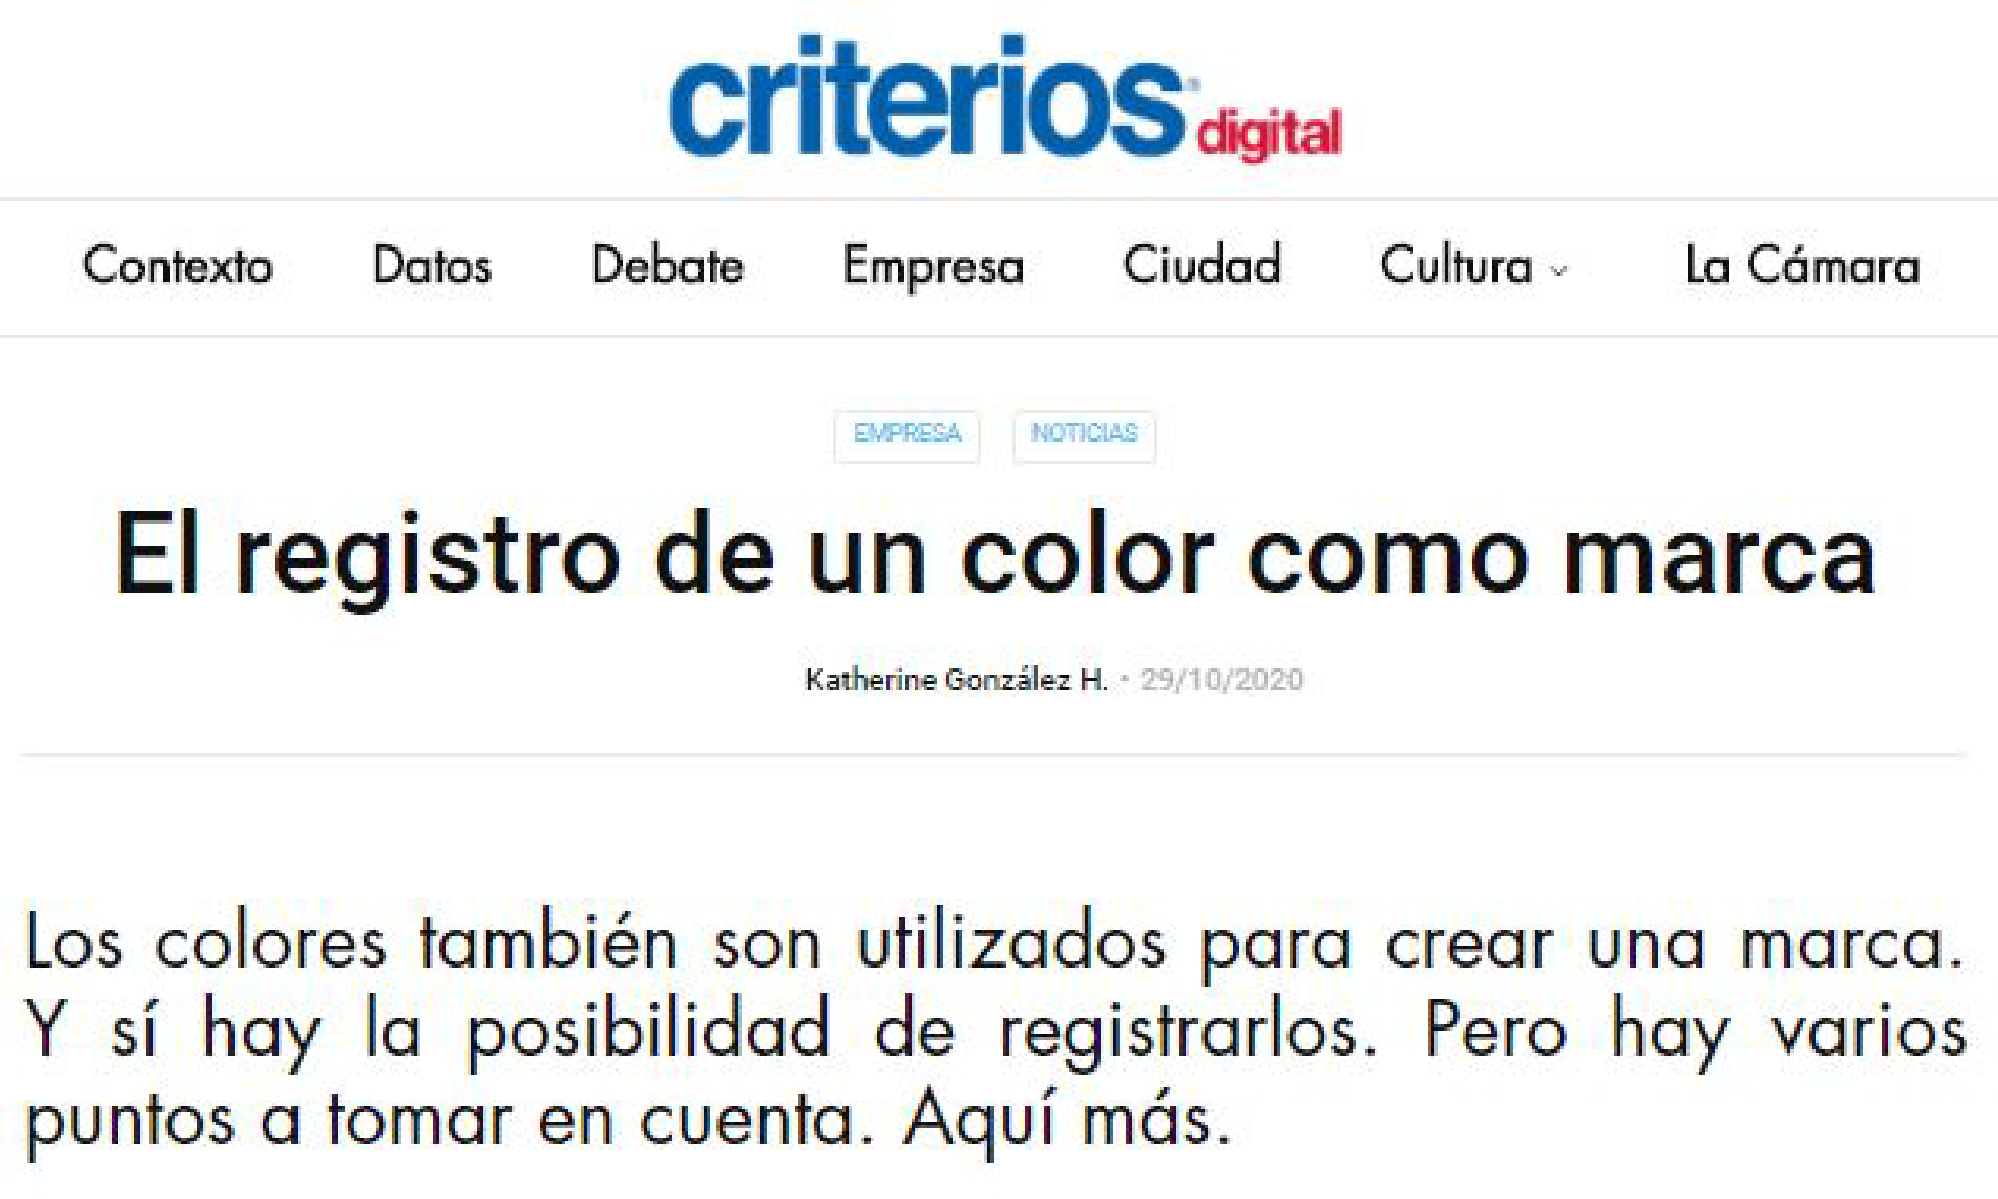 registro_color_como_marca_criterio_digital_abogados_ecuador